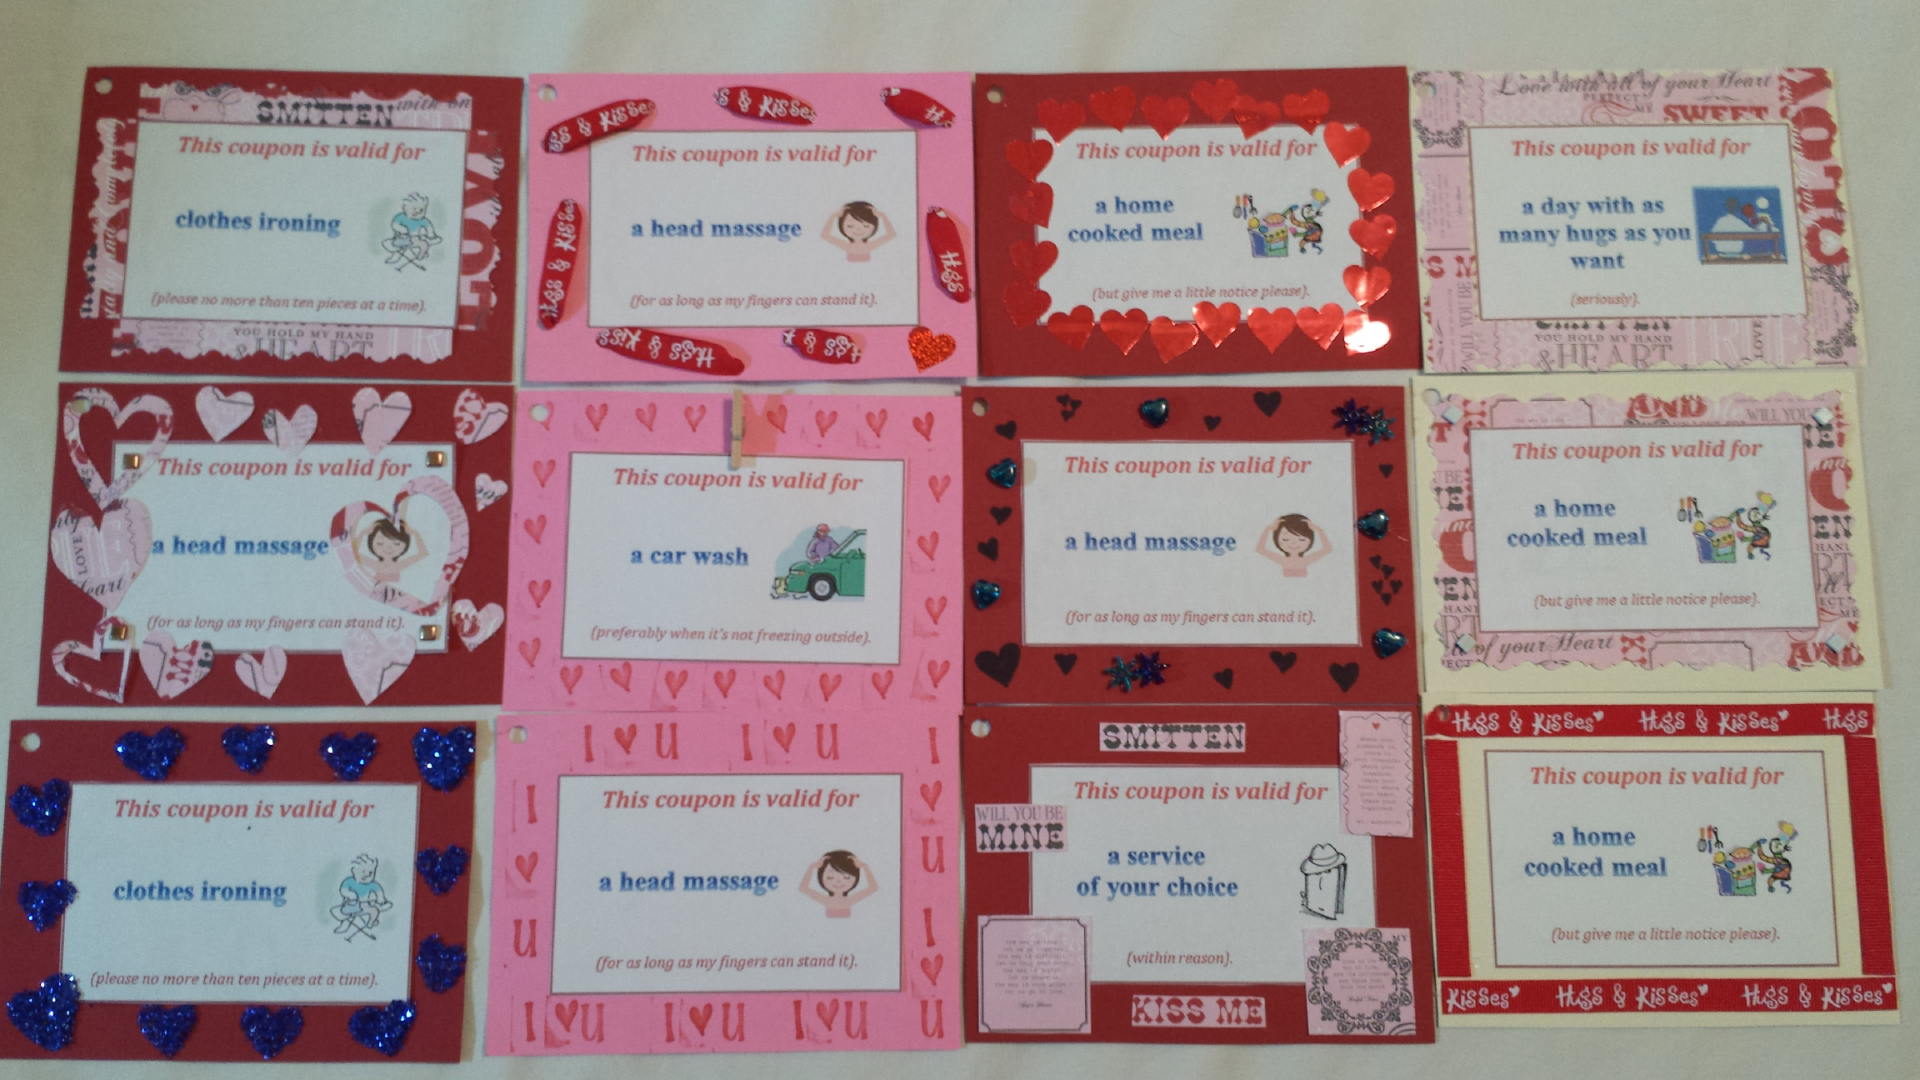 Coupon ideas for a boyfriend/girlfriend for Valentines